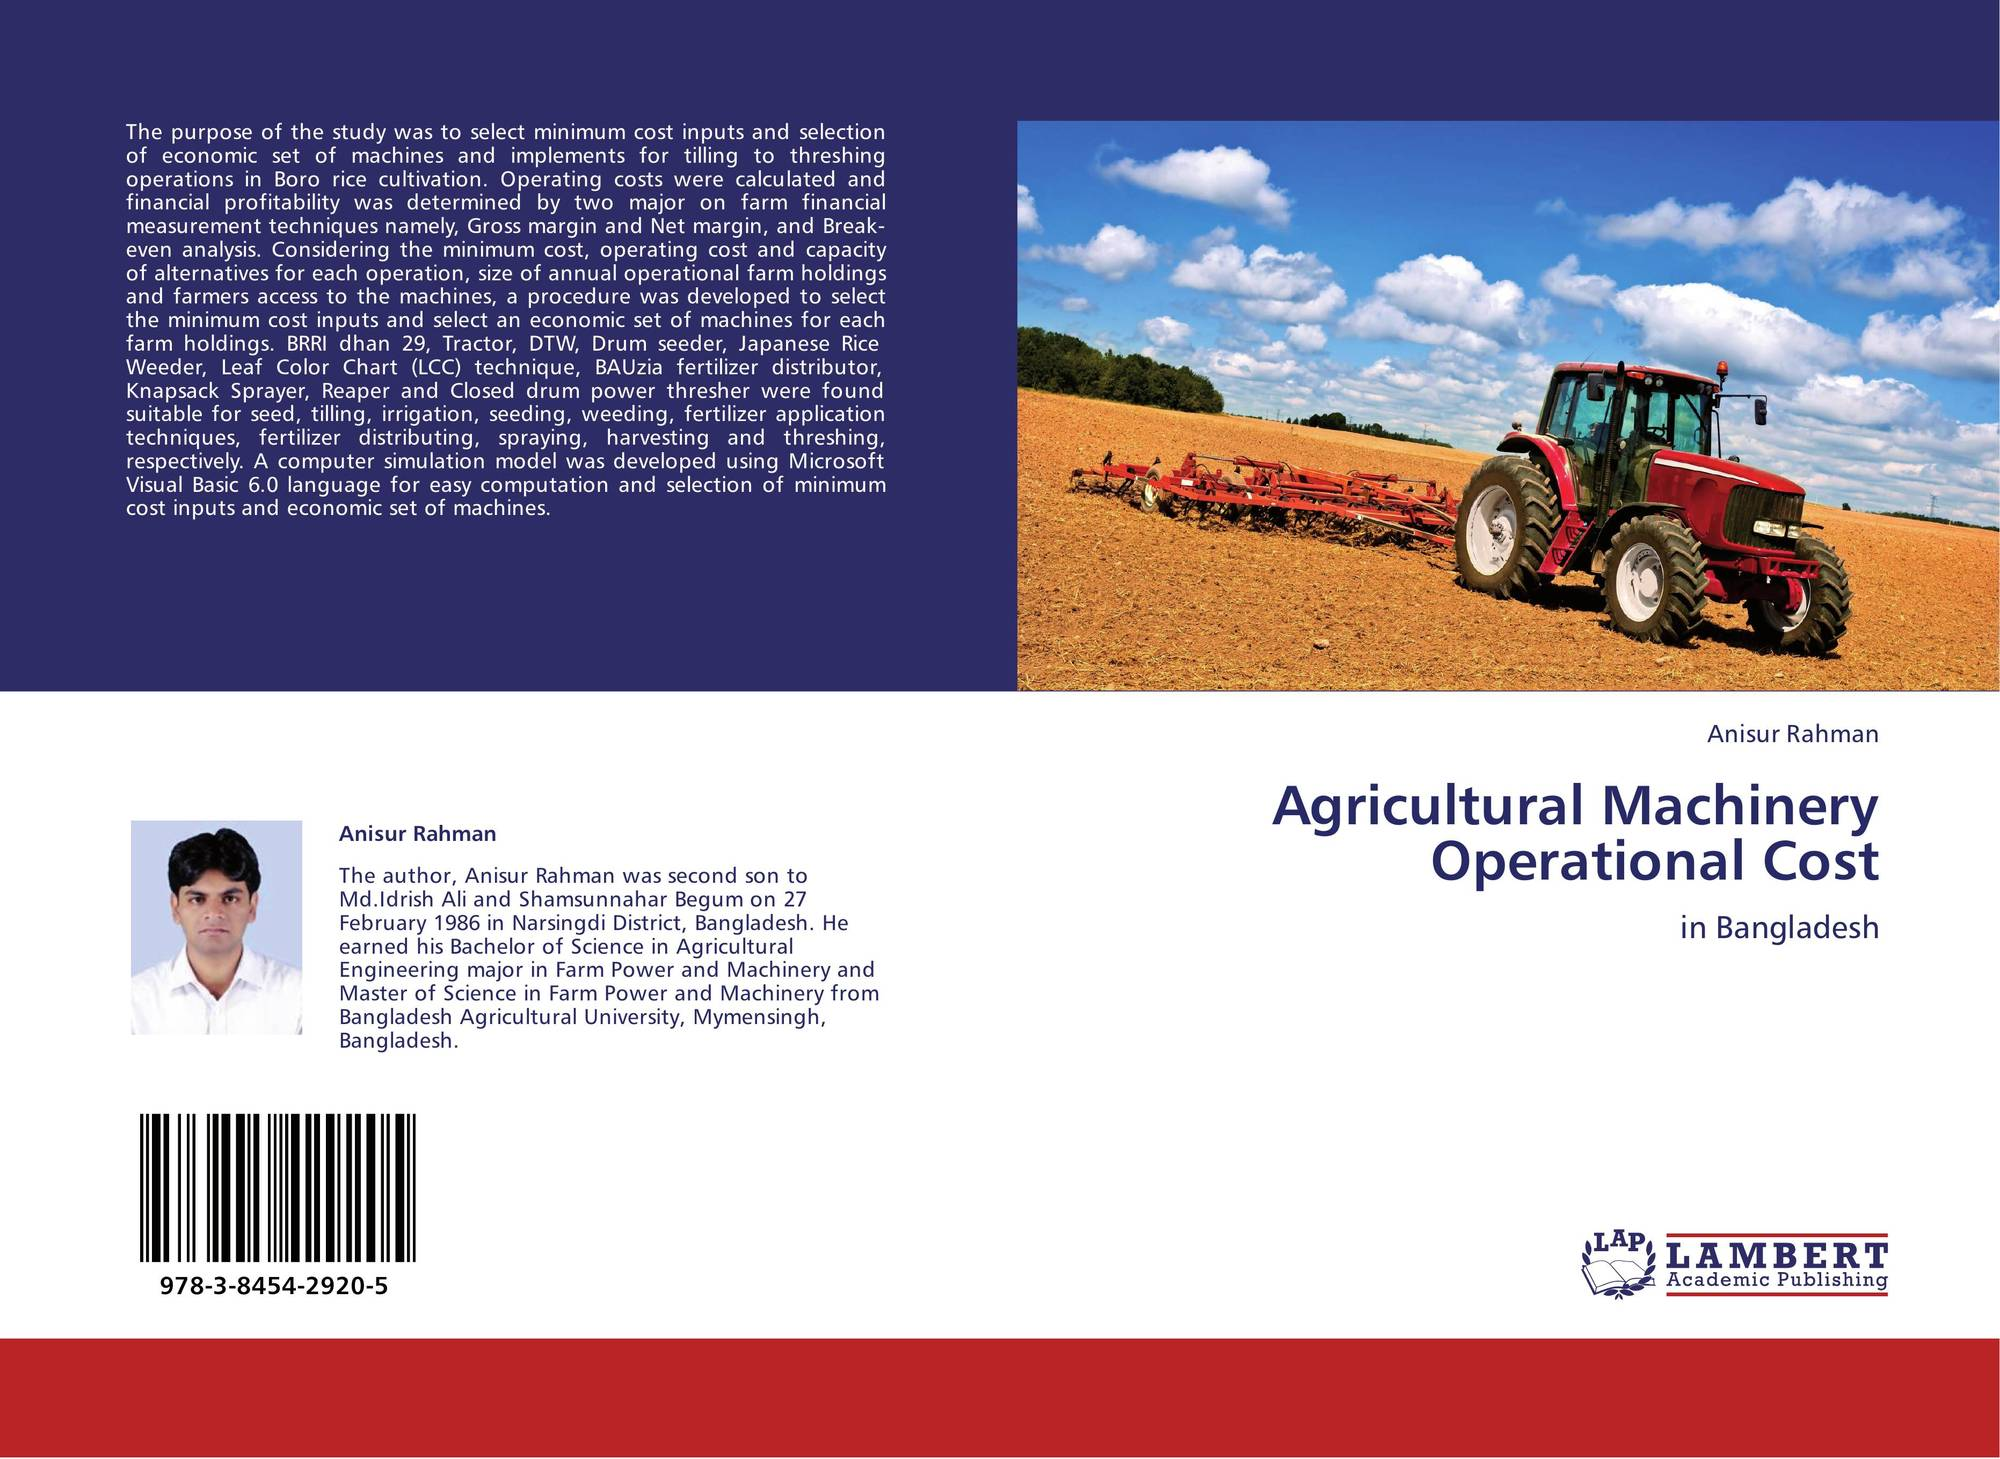 analysis of tractors Analysis of variance or anova is an important technique for analyzing the effect of categorical statgraphics technologies products provide several procedures for performing an analysis of variance.